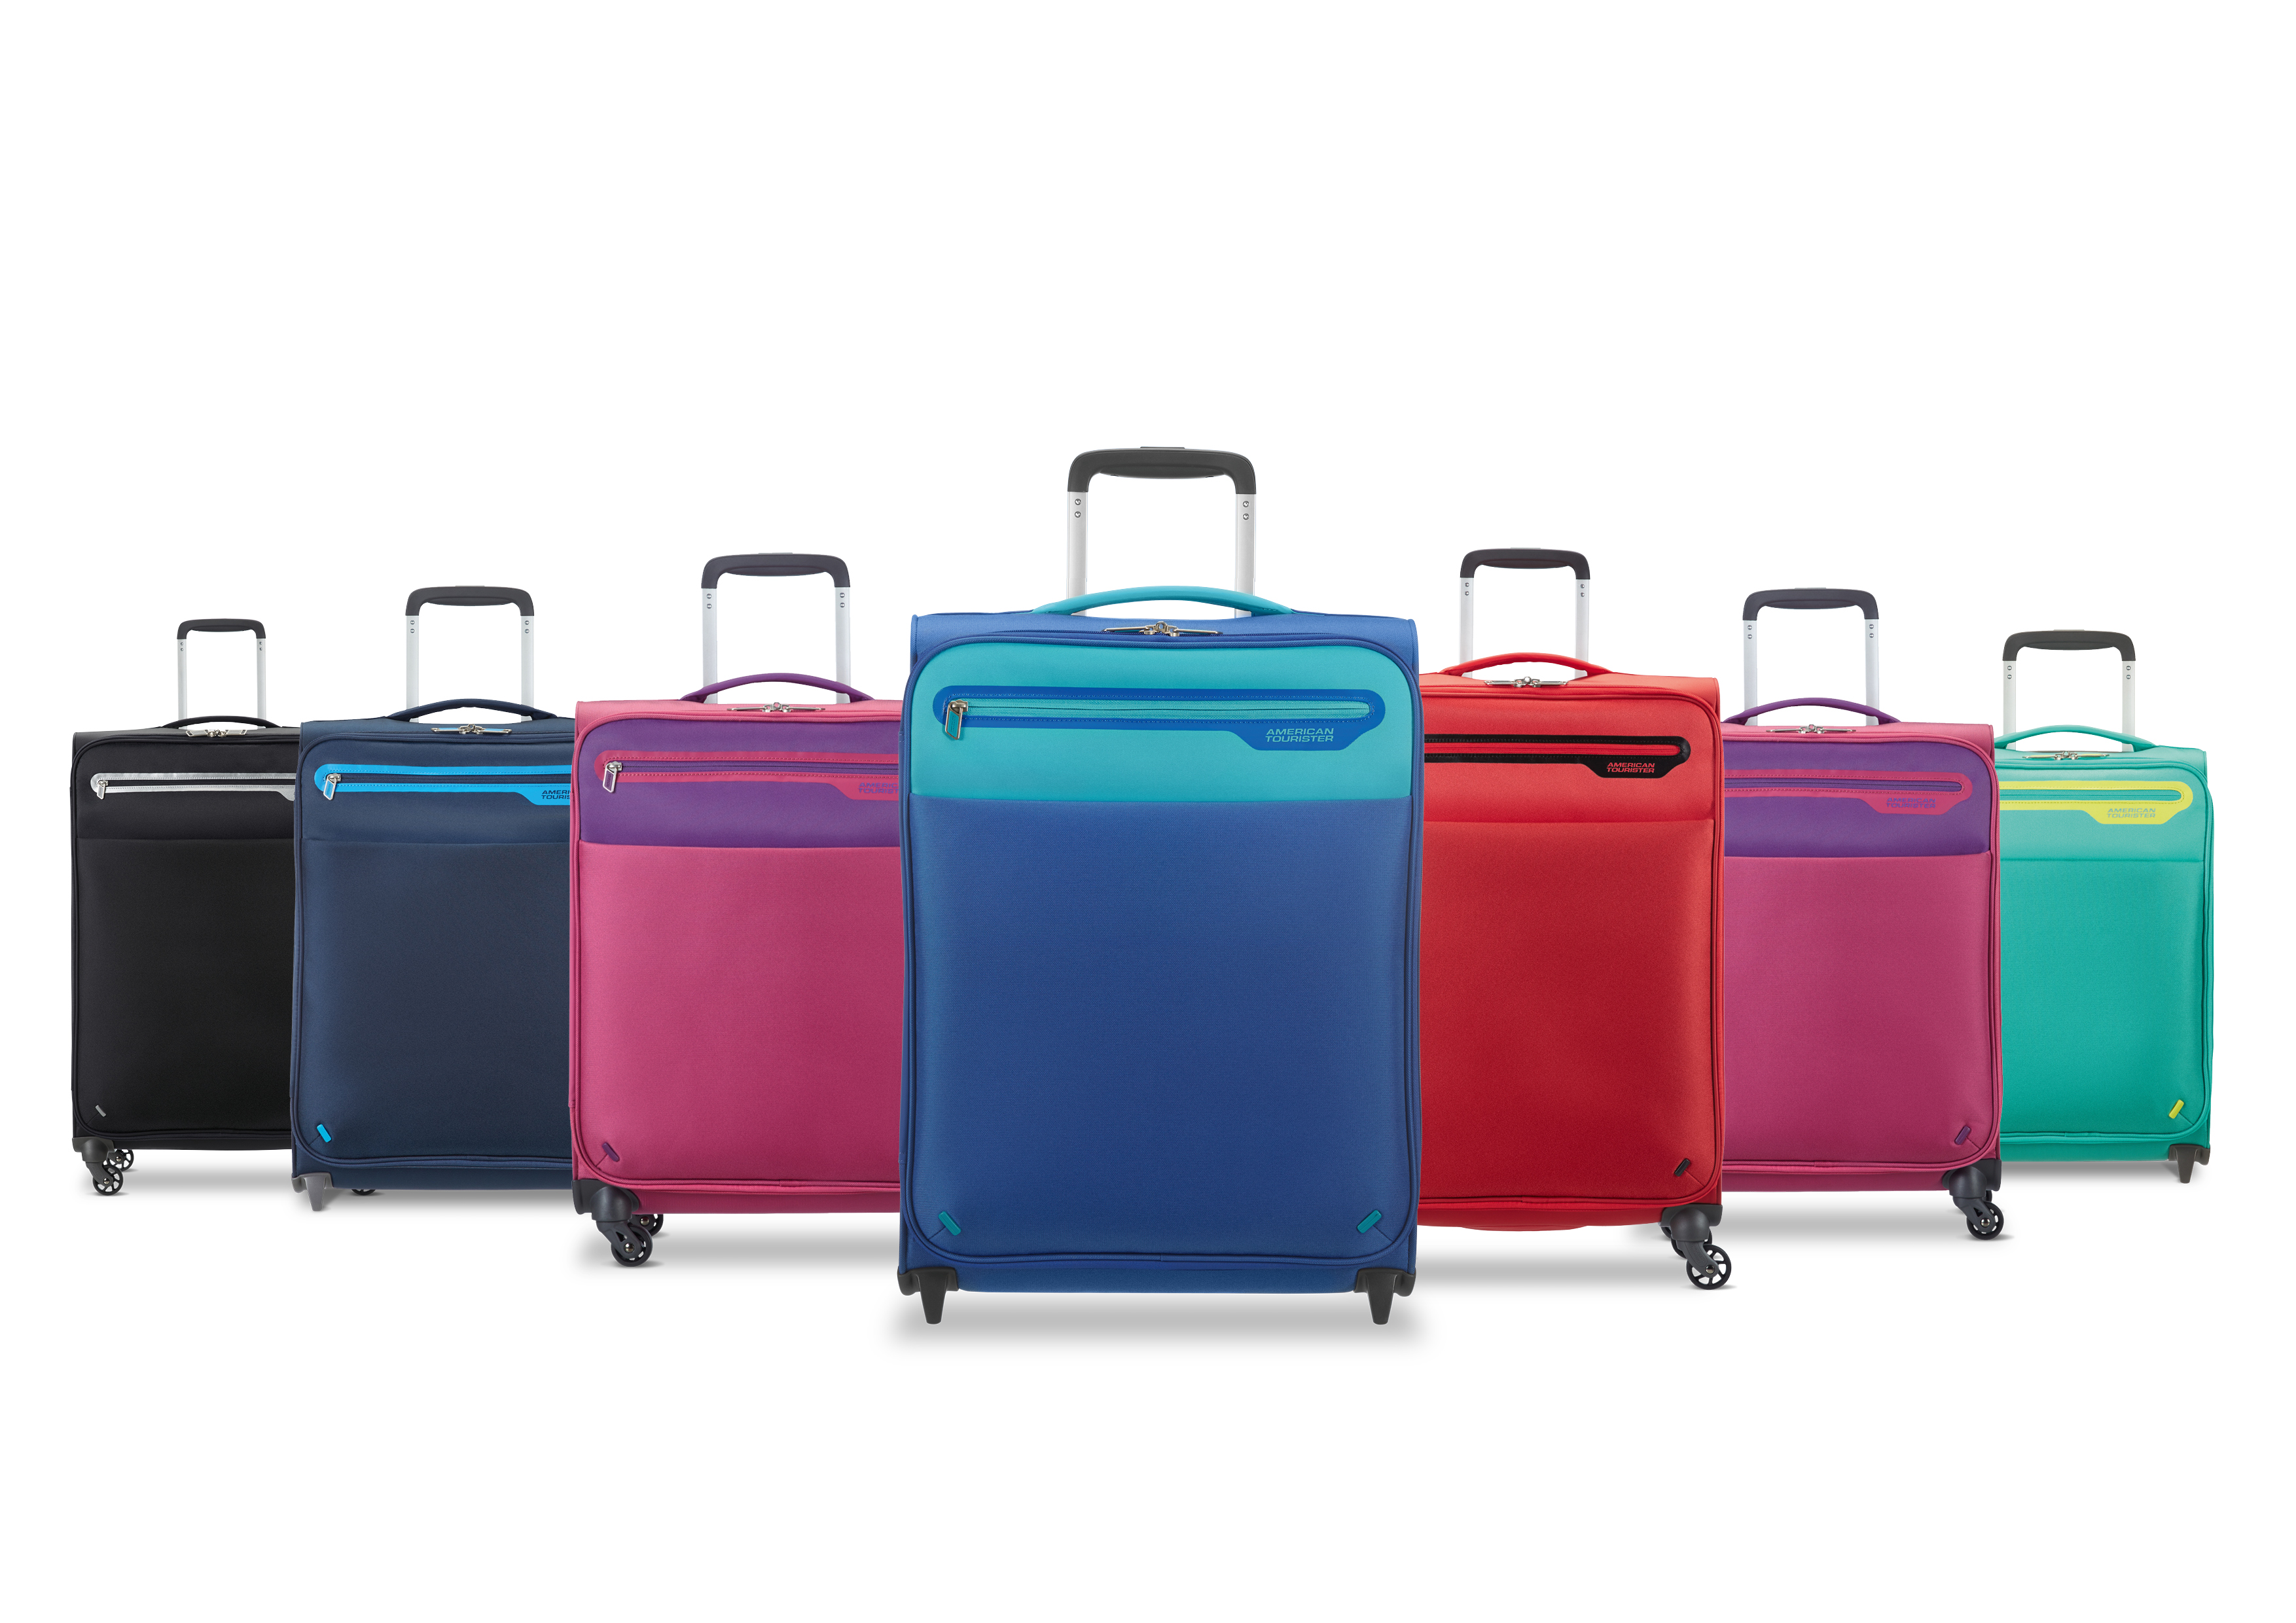 Suitcase American Tourister: User Reviews 67